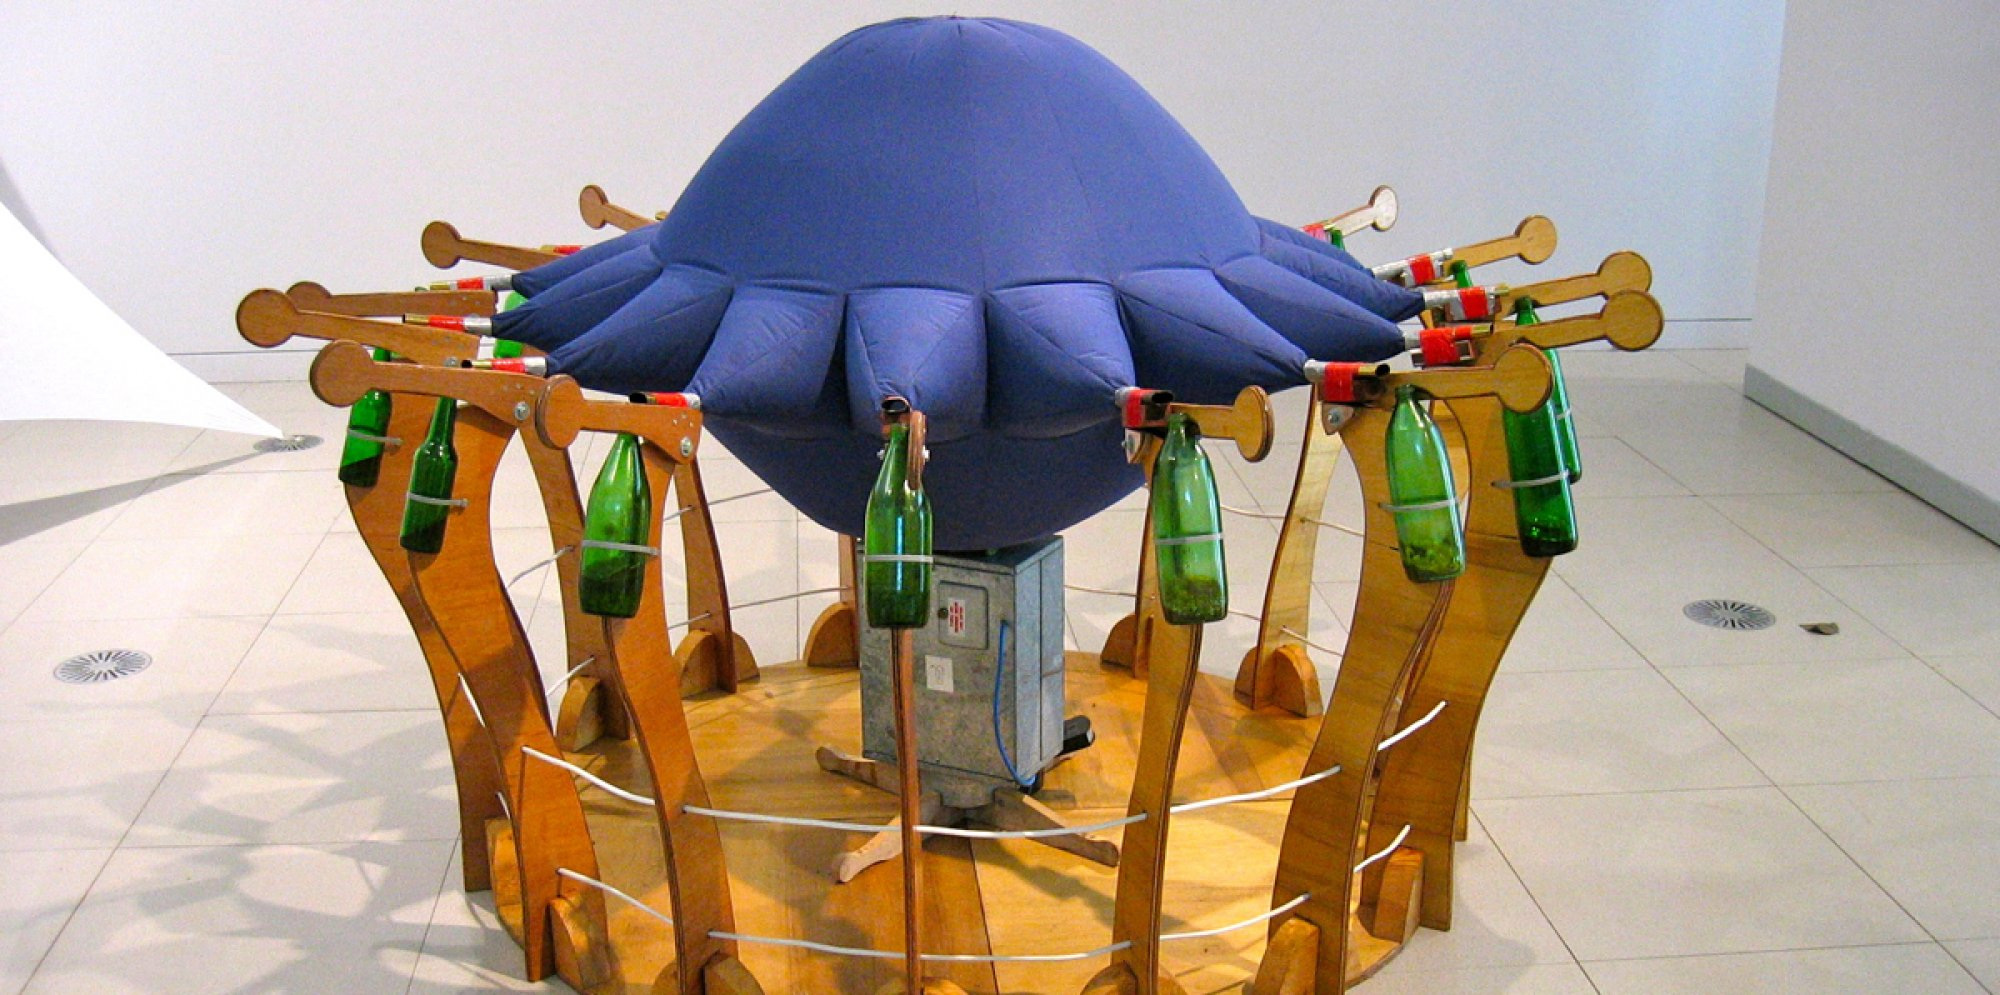 an installation in a wide gallery space. Sat on a wooden pedestal, an inflated blue sphere is attached to a ring of green bottles.